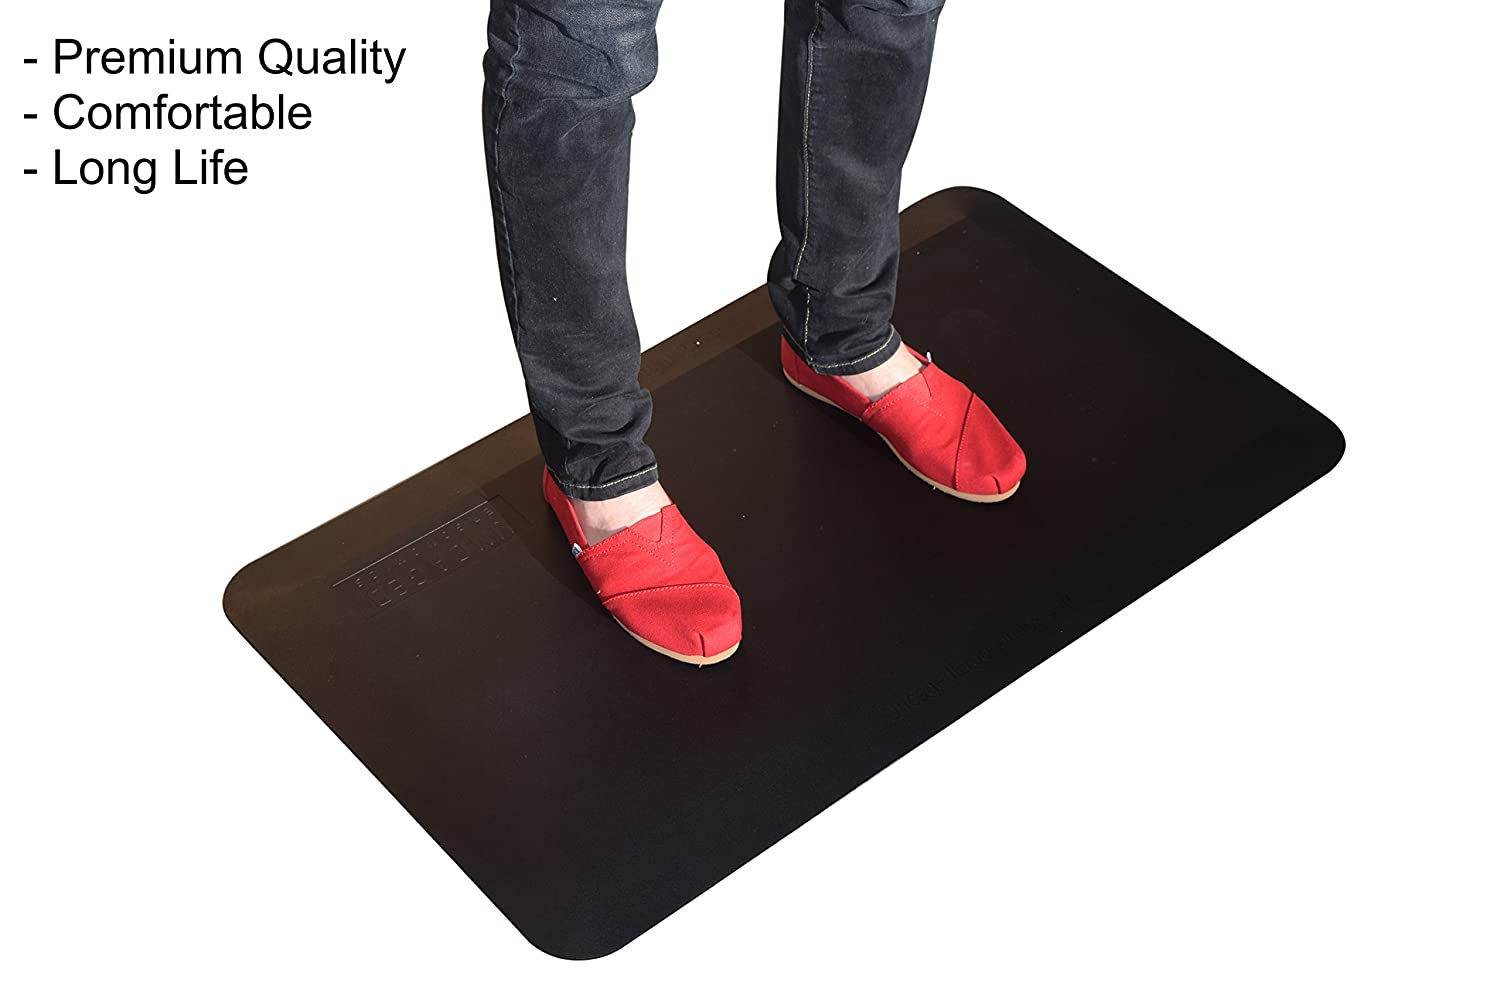 supplier industrial place supply extreme new mat certified first mats slide inc featured hubzone standing a bestselling